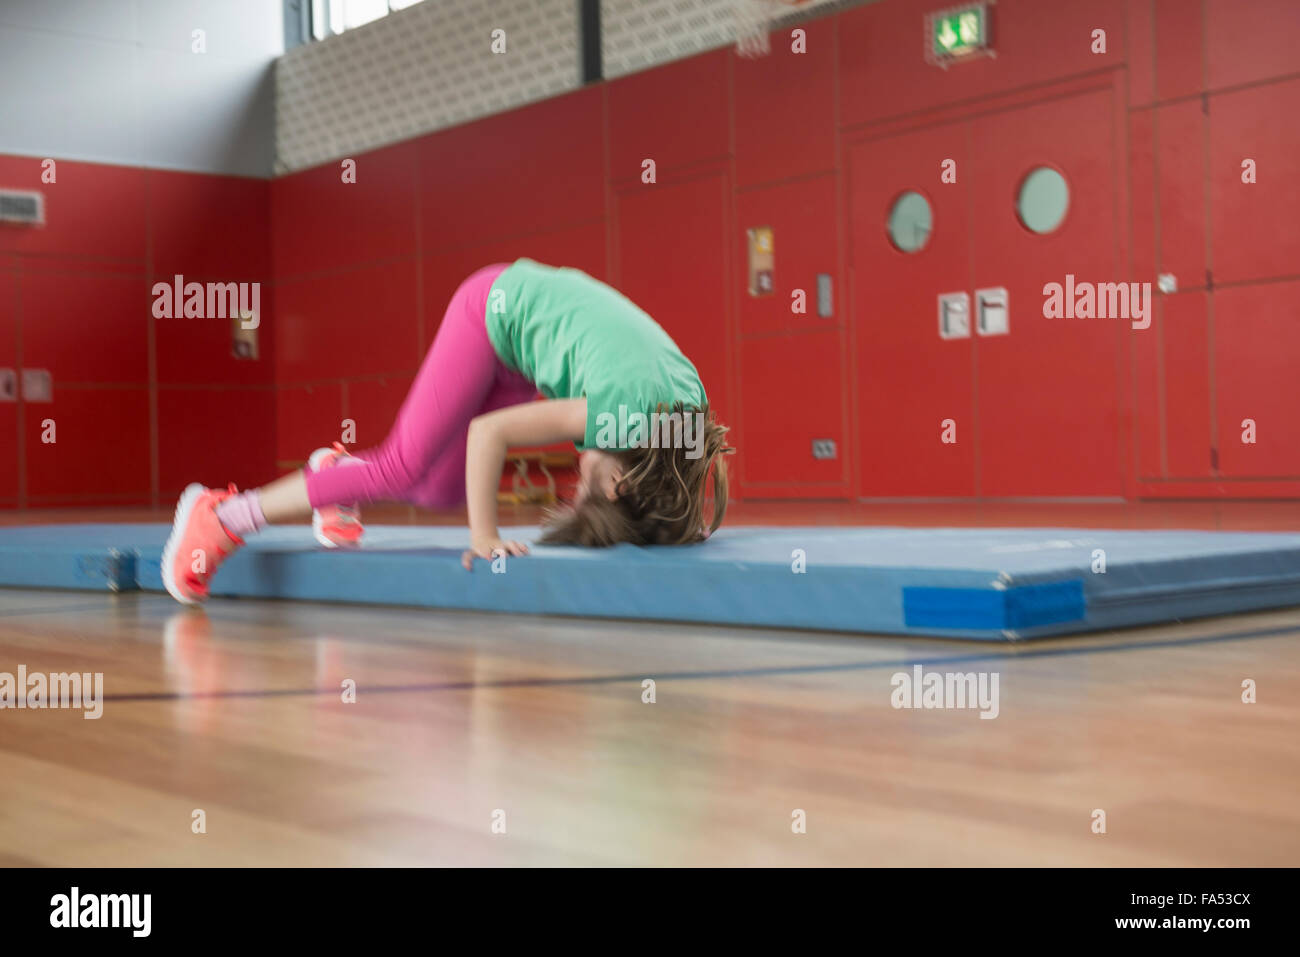 Girl doing somersault on exercise mat in sports hall, Munich, Bavaria, Germany - Stock Image